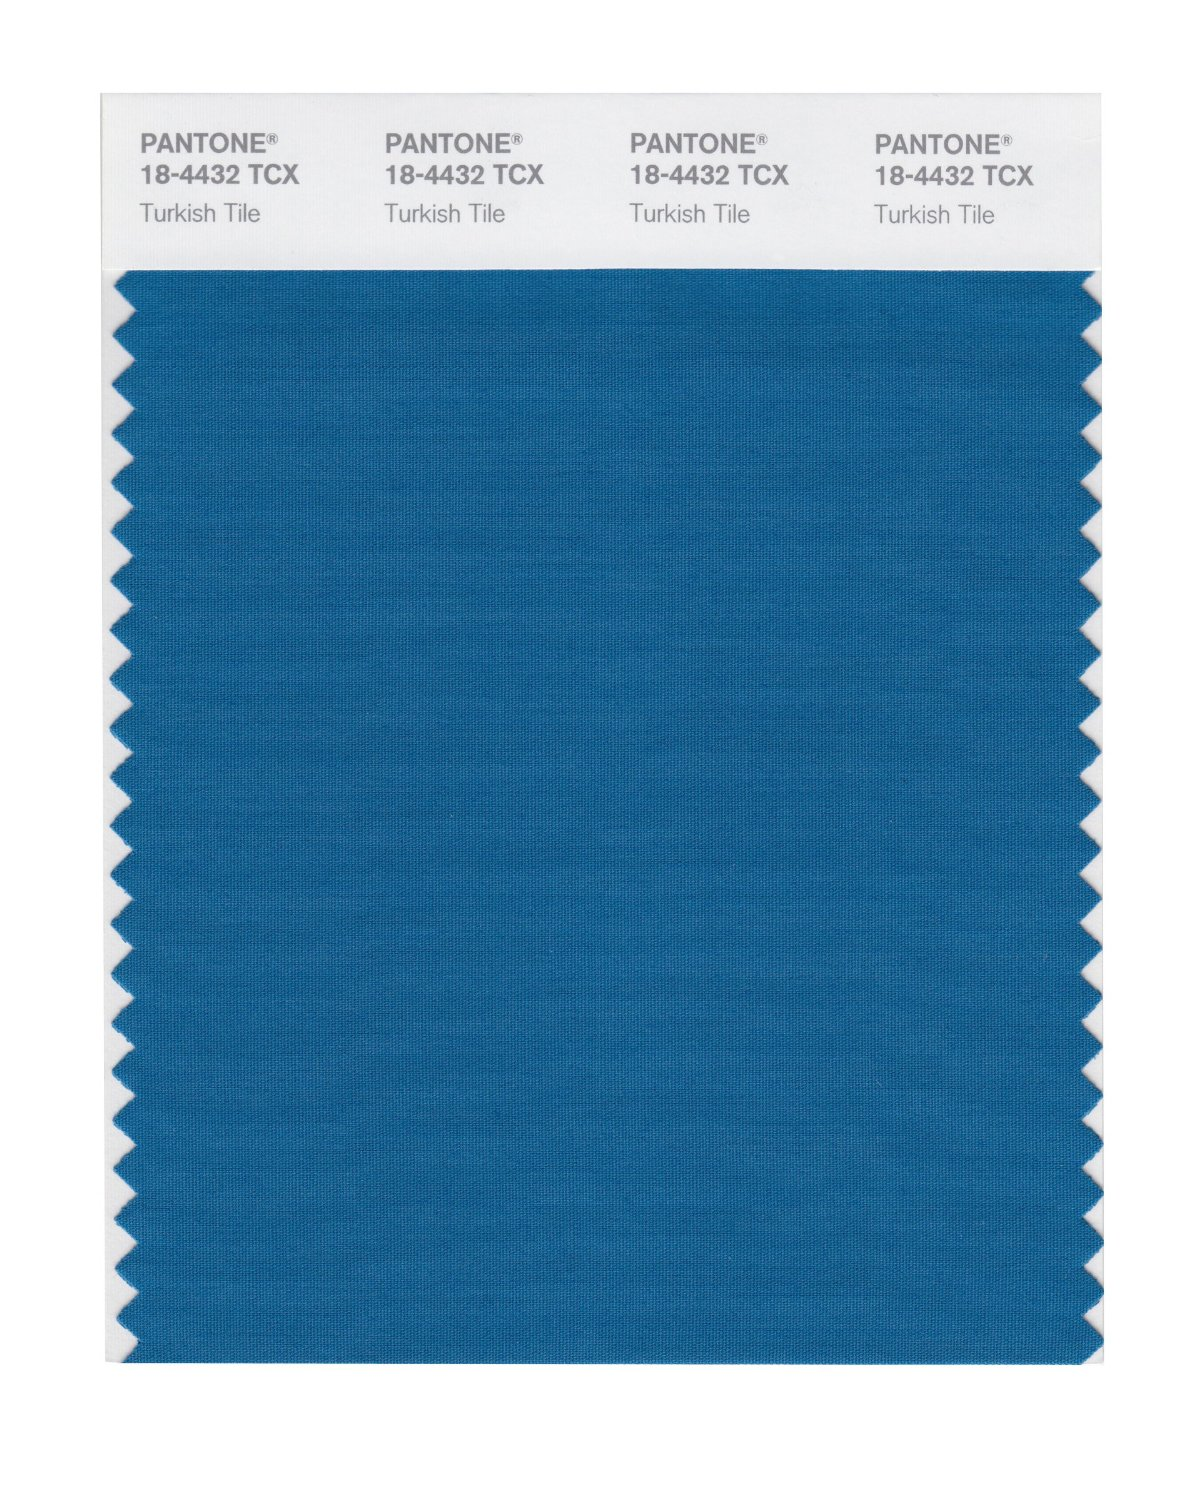 Pantone Smart Swatch 18-4432 Turkish Tile